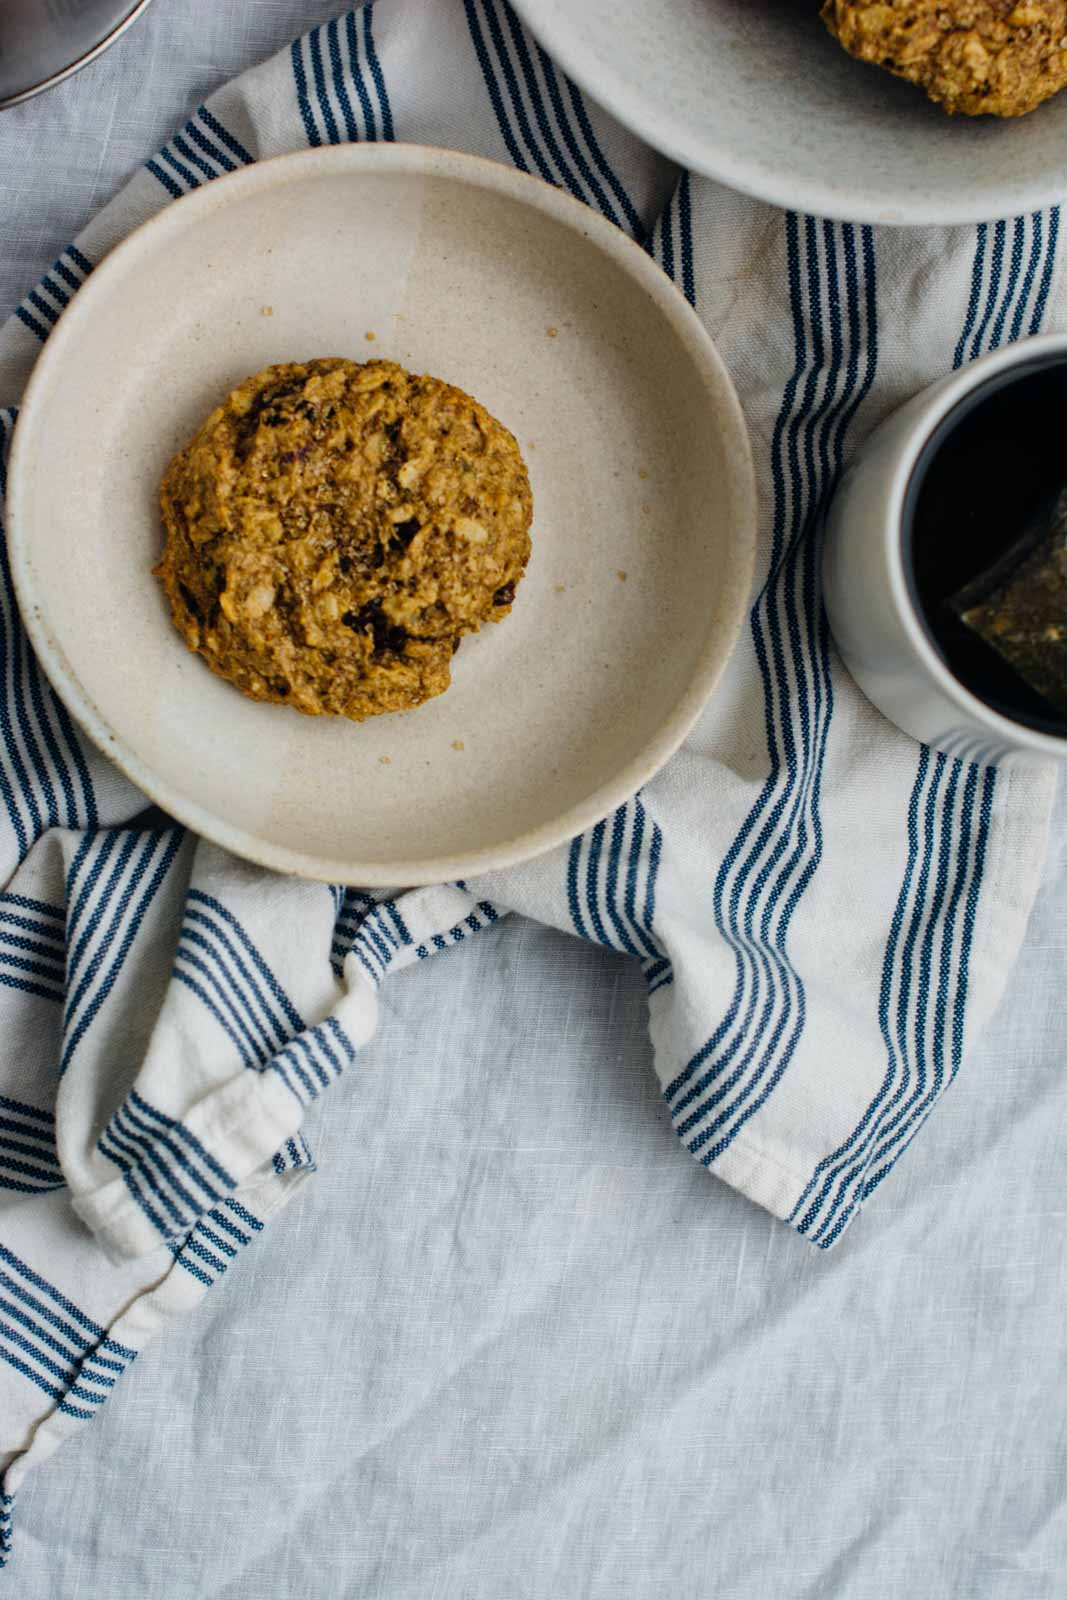 pumpkin spice breakfast cookies and a more thoughtful holiday - these vegan cookies are gluten-free, dairy-free, vegan and perfect for grabbing and running out the door during the busy holiday season! | www.scalingbackblog.com